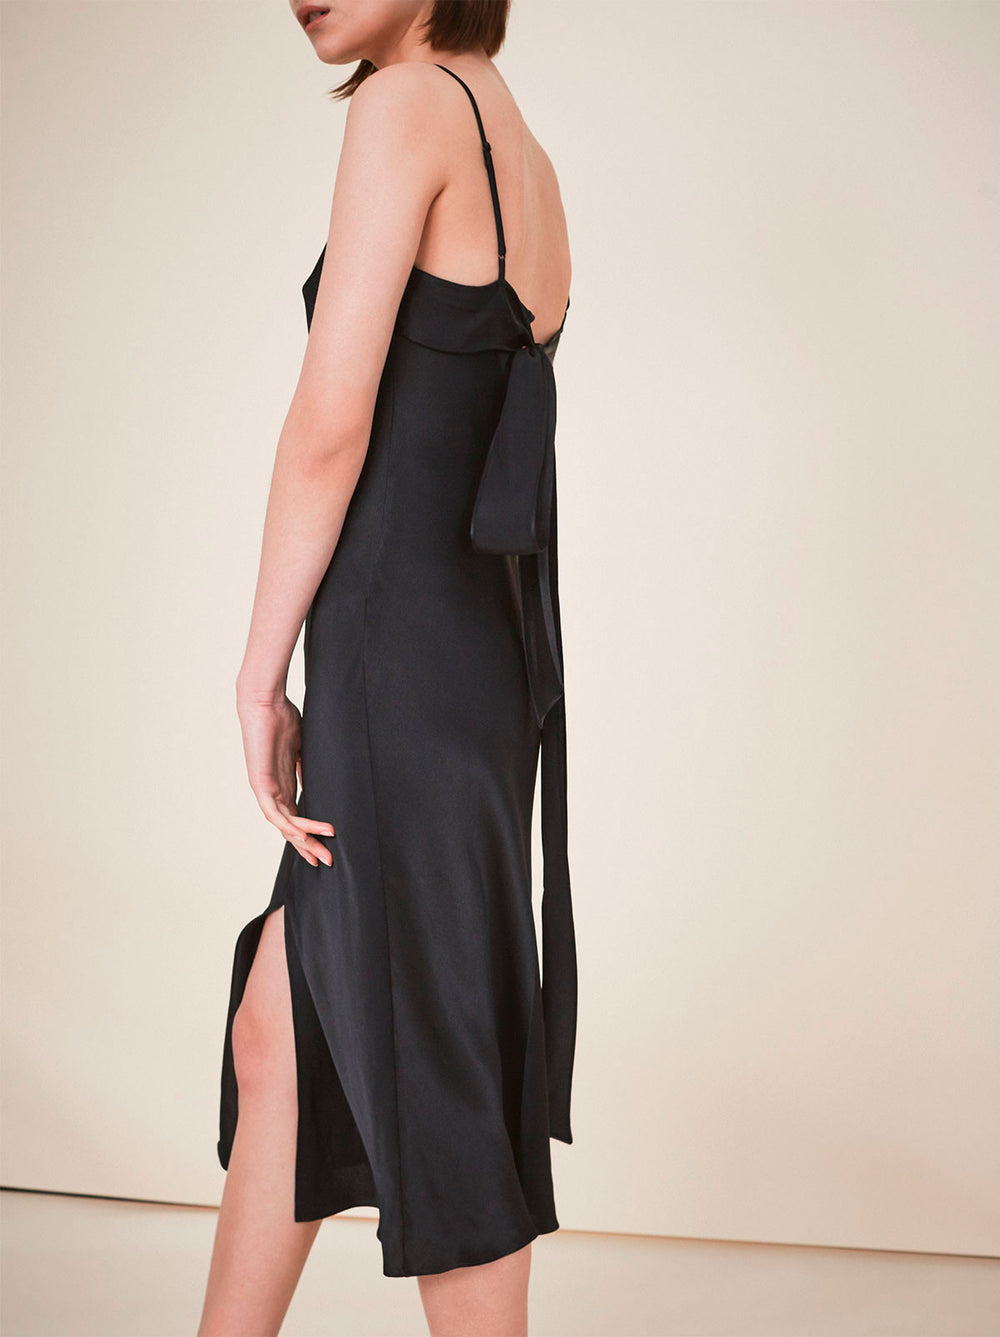 Ondine Black Slip Cocktail Dress by KITRI Studio